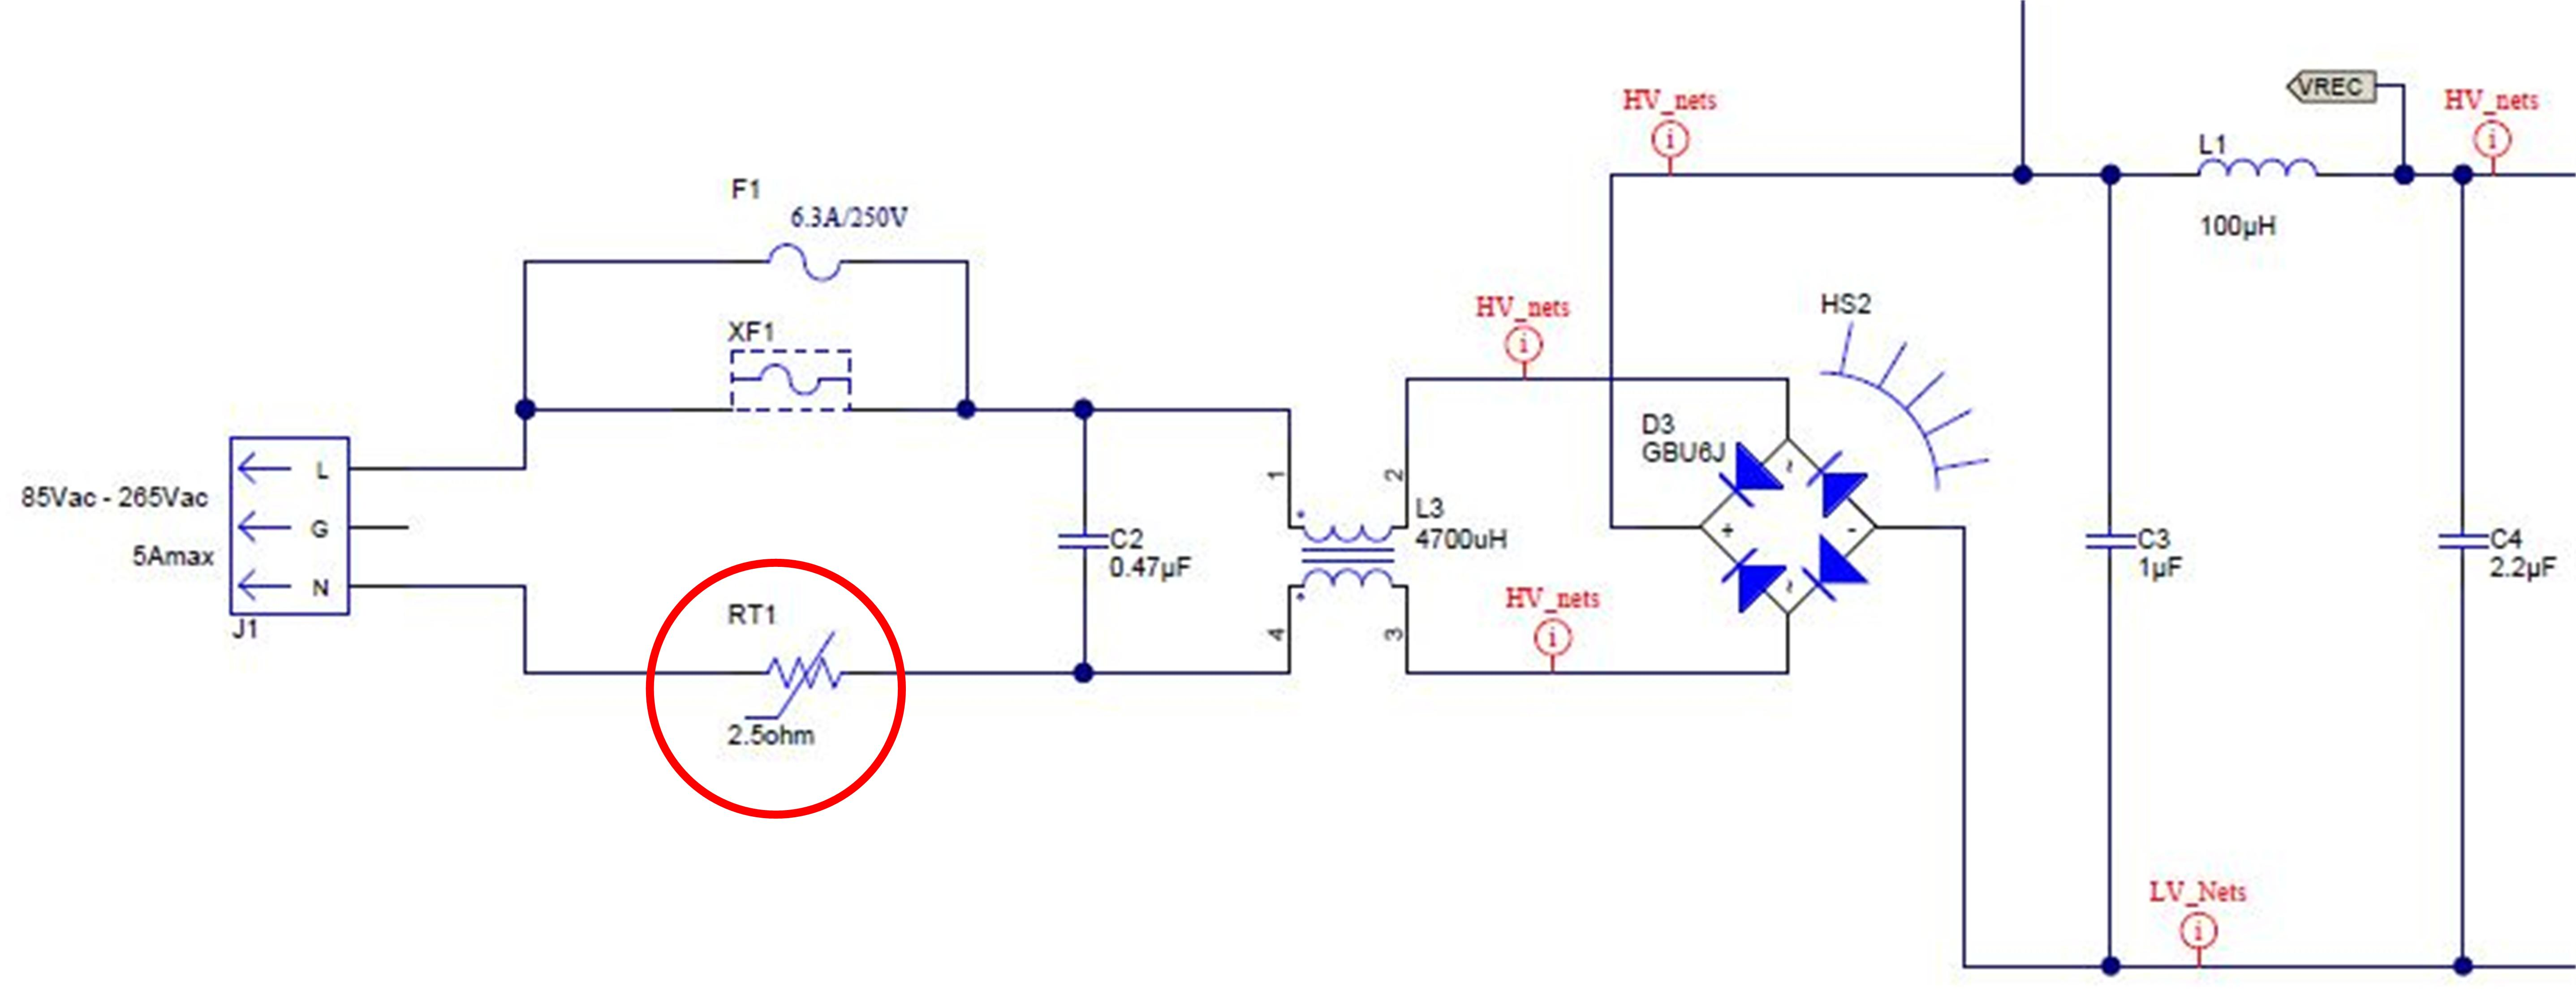 Figure 3: A half-wave rectifier with resistor as inrush current limiter